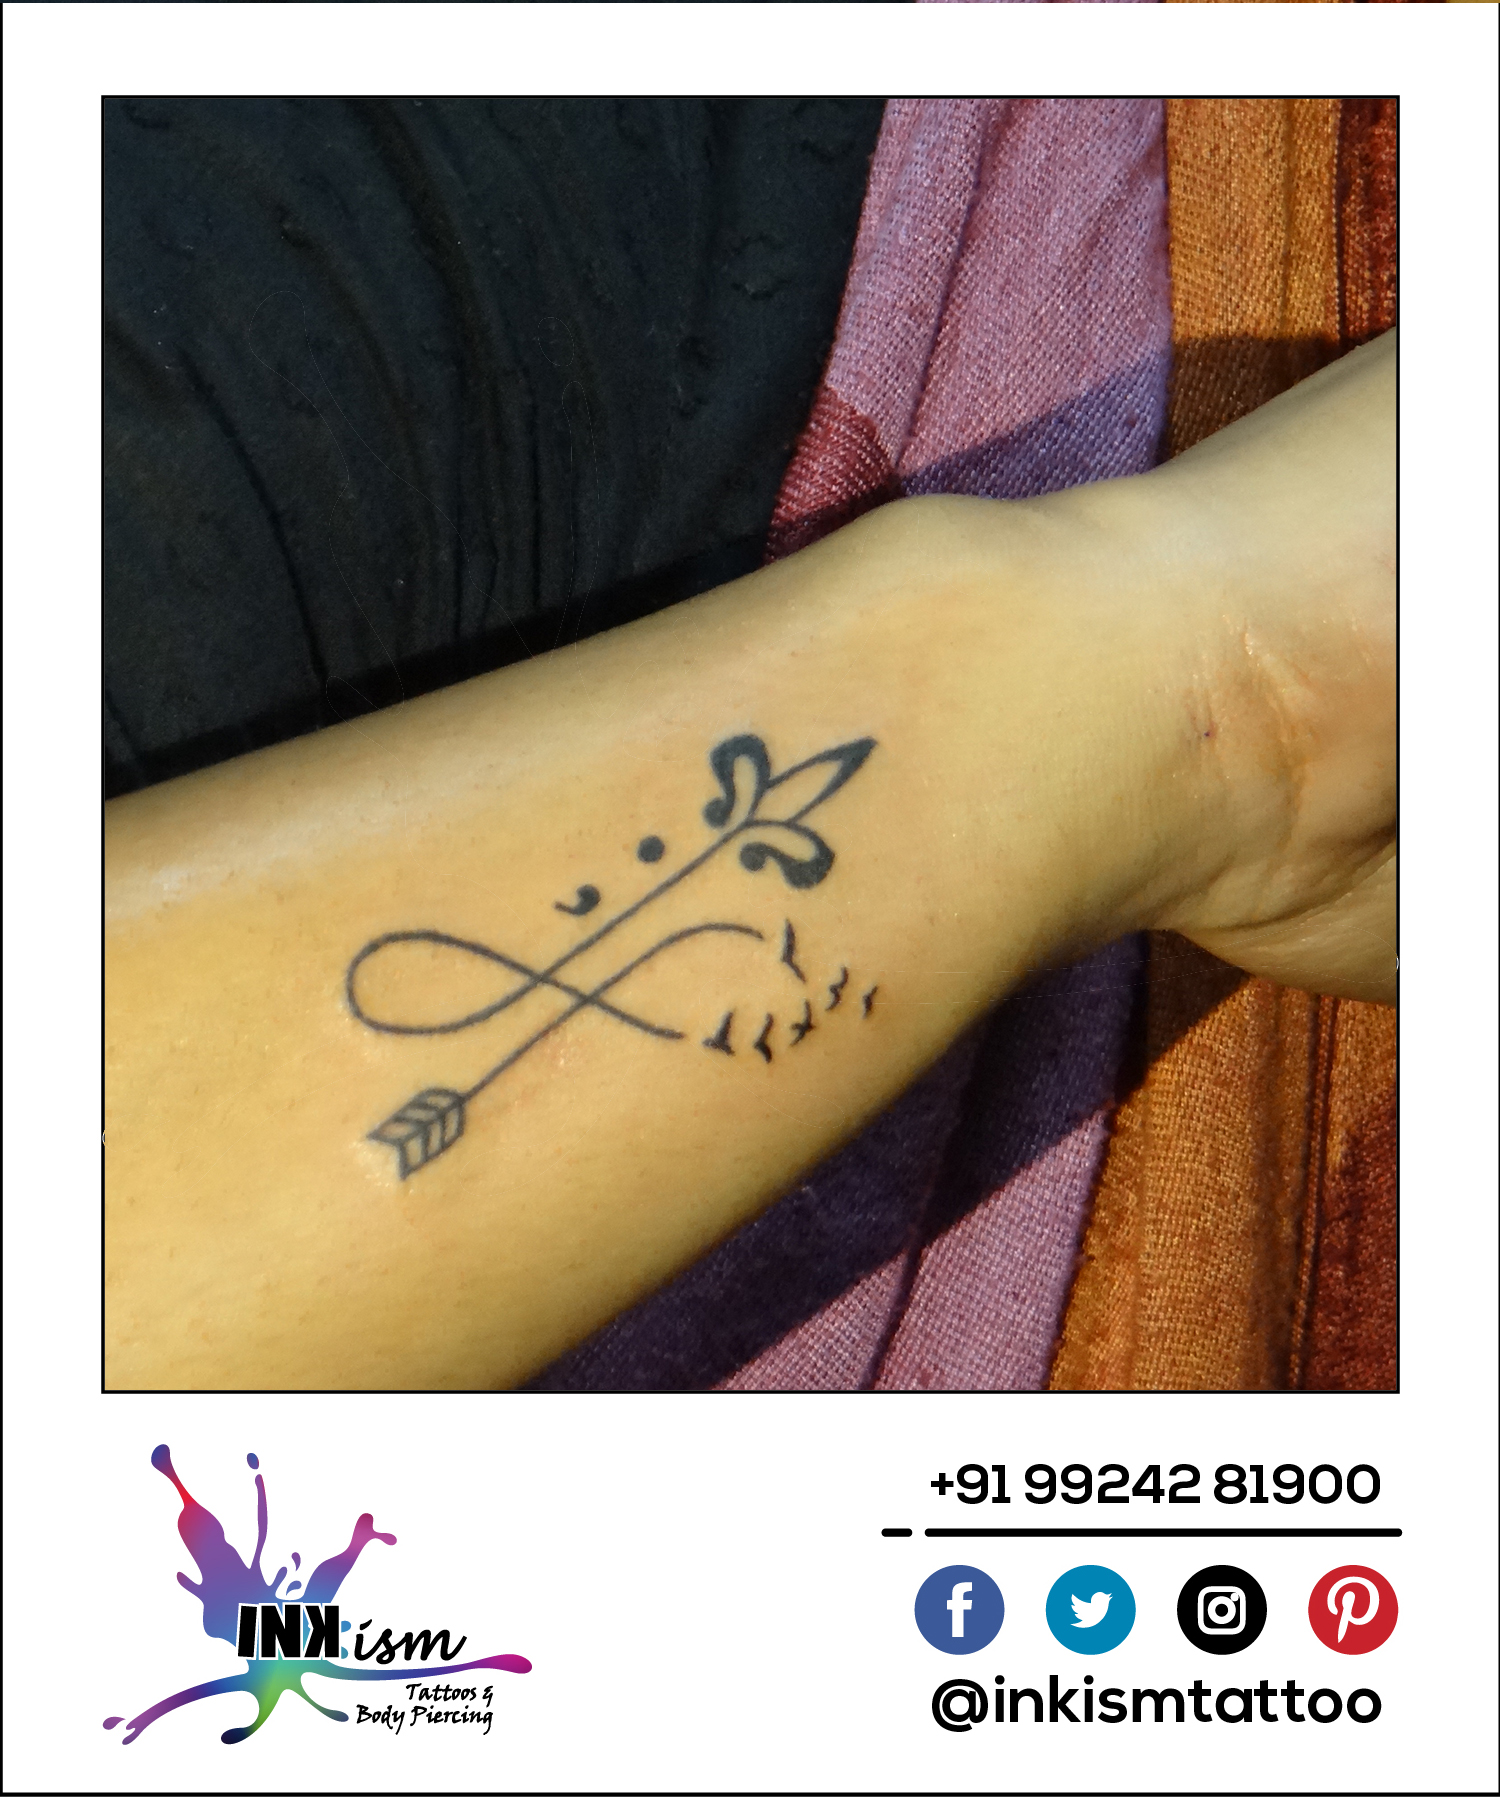 Infinity arrow tattoo, infinity tattoo, arrow tattoo, inkism tattoo and body piercing rajkot gujarat